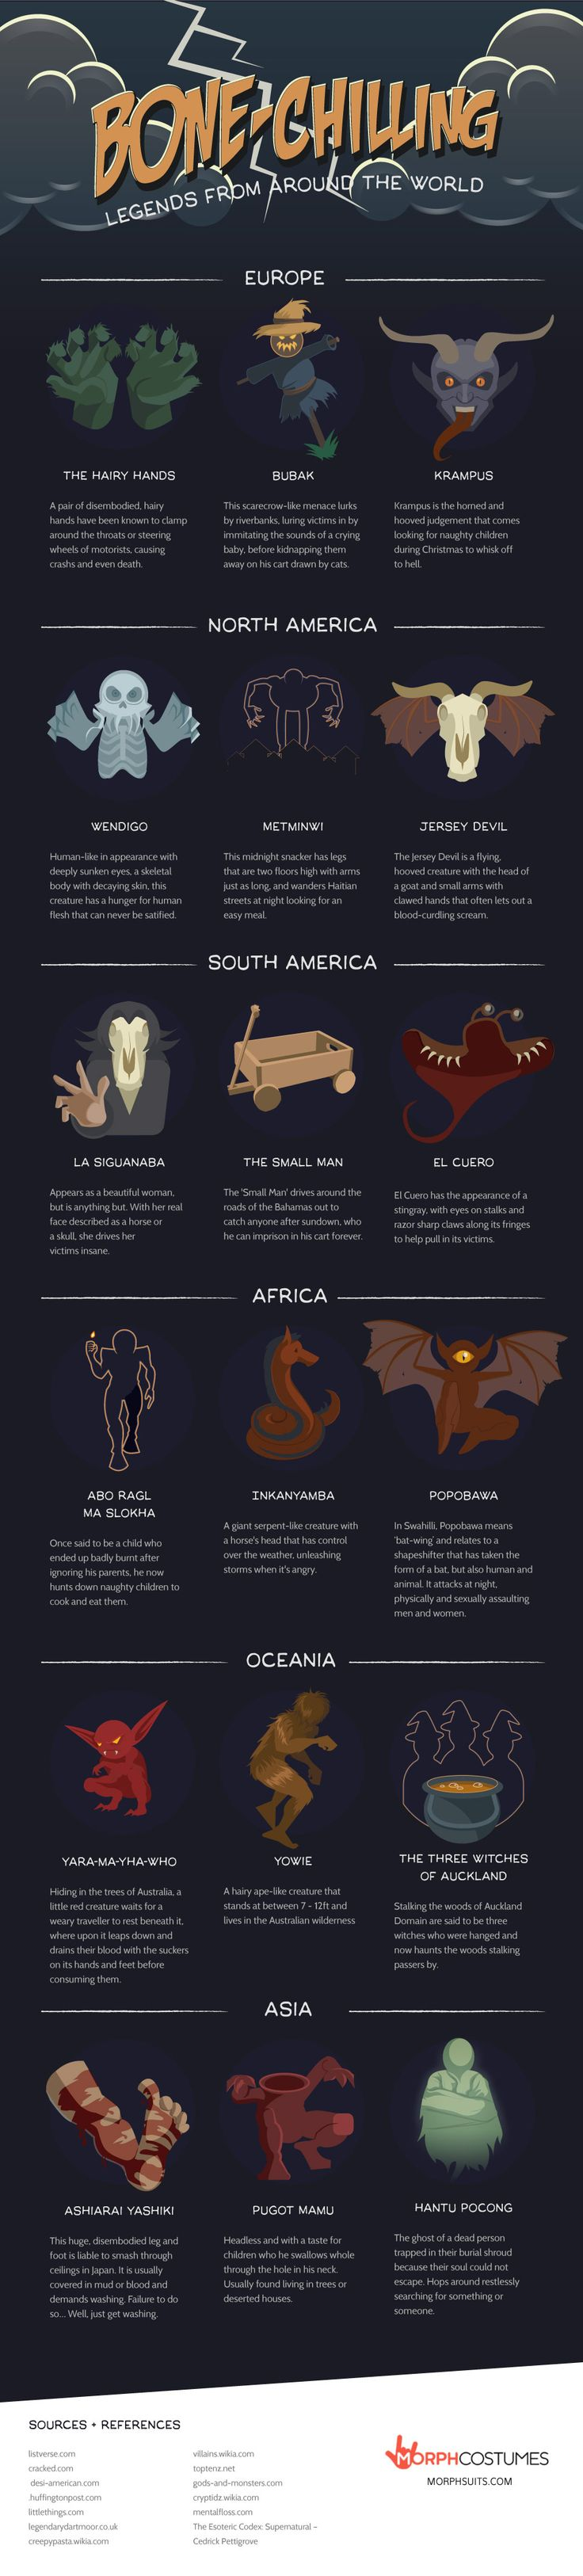 These are just a few of the terrifying myths, monsters, and ghouls from around the world.